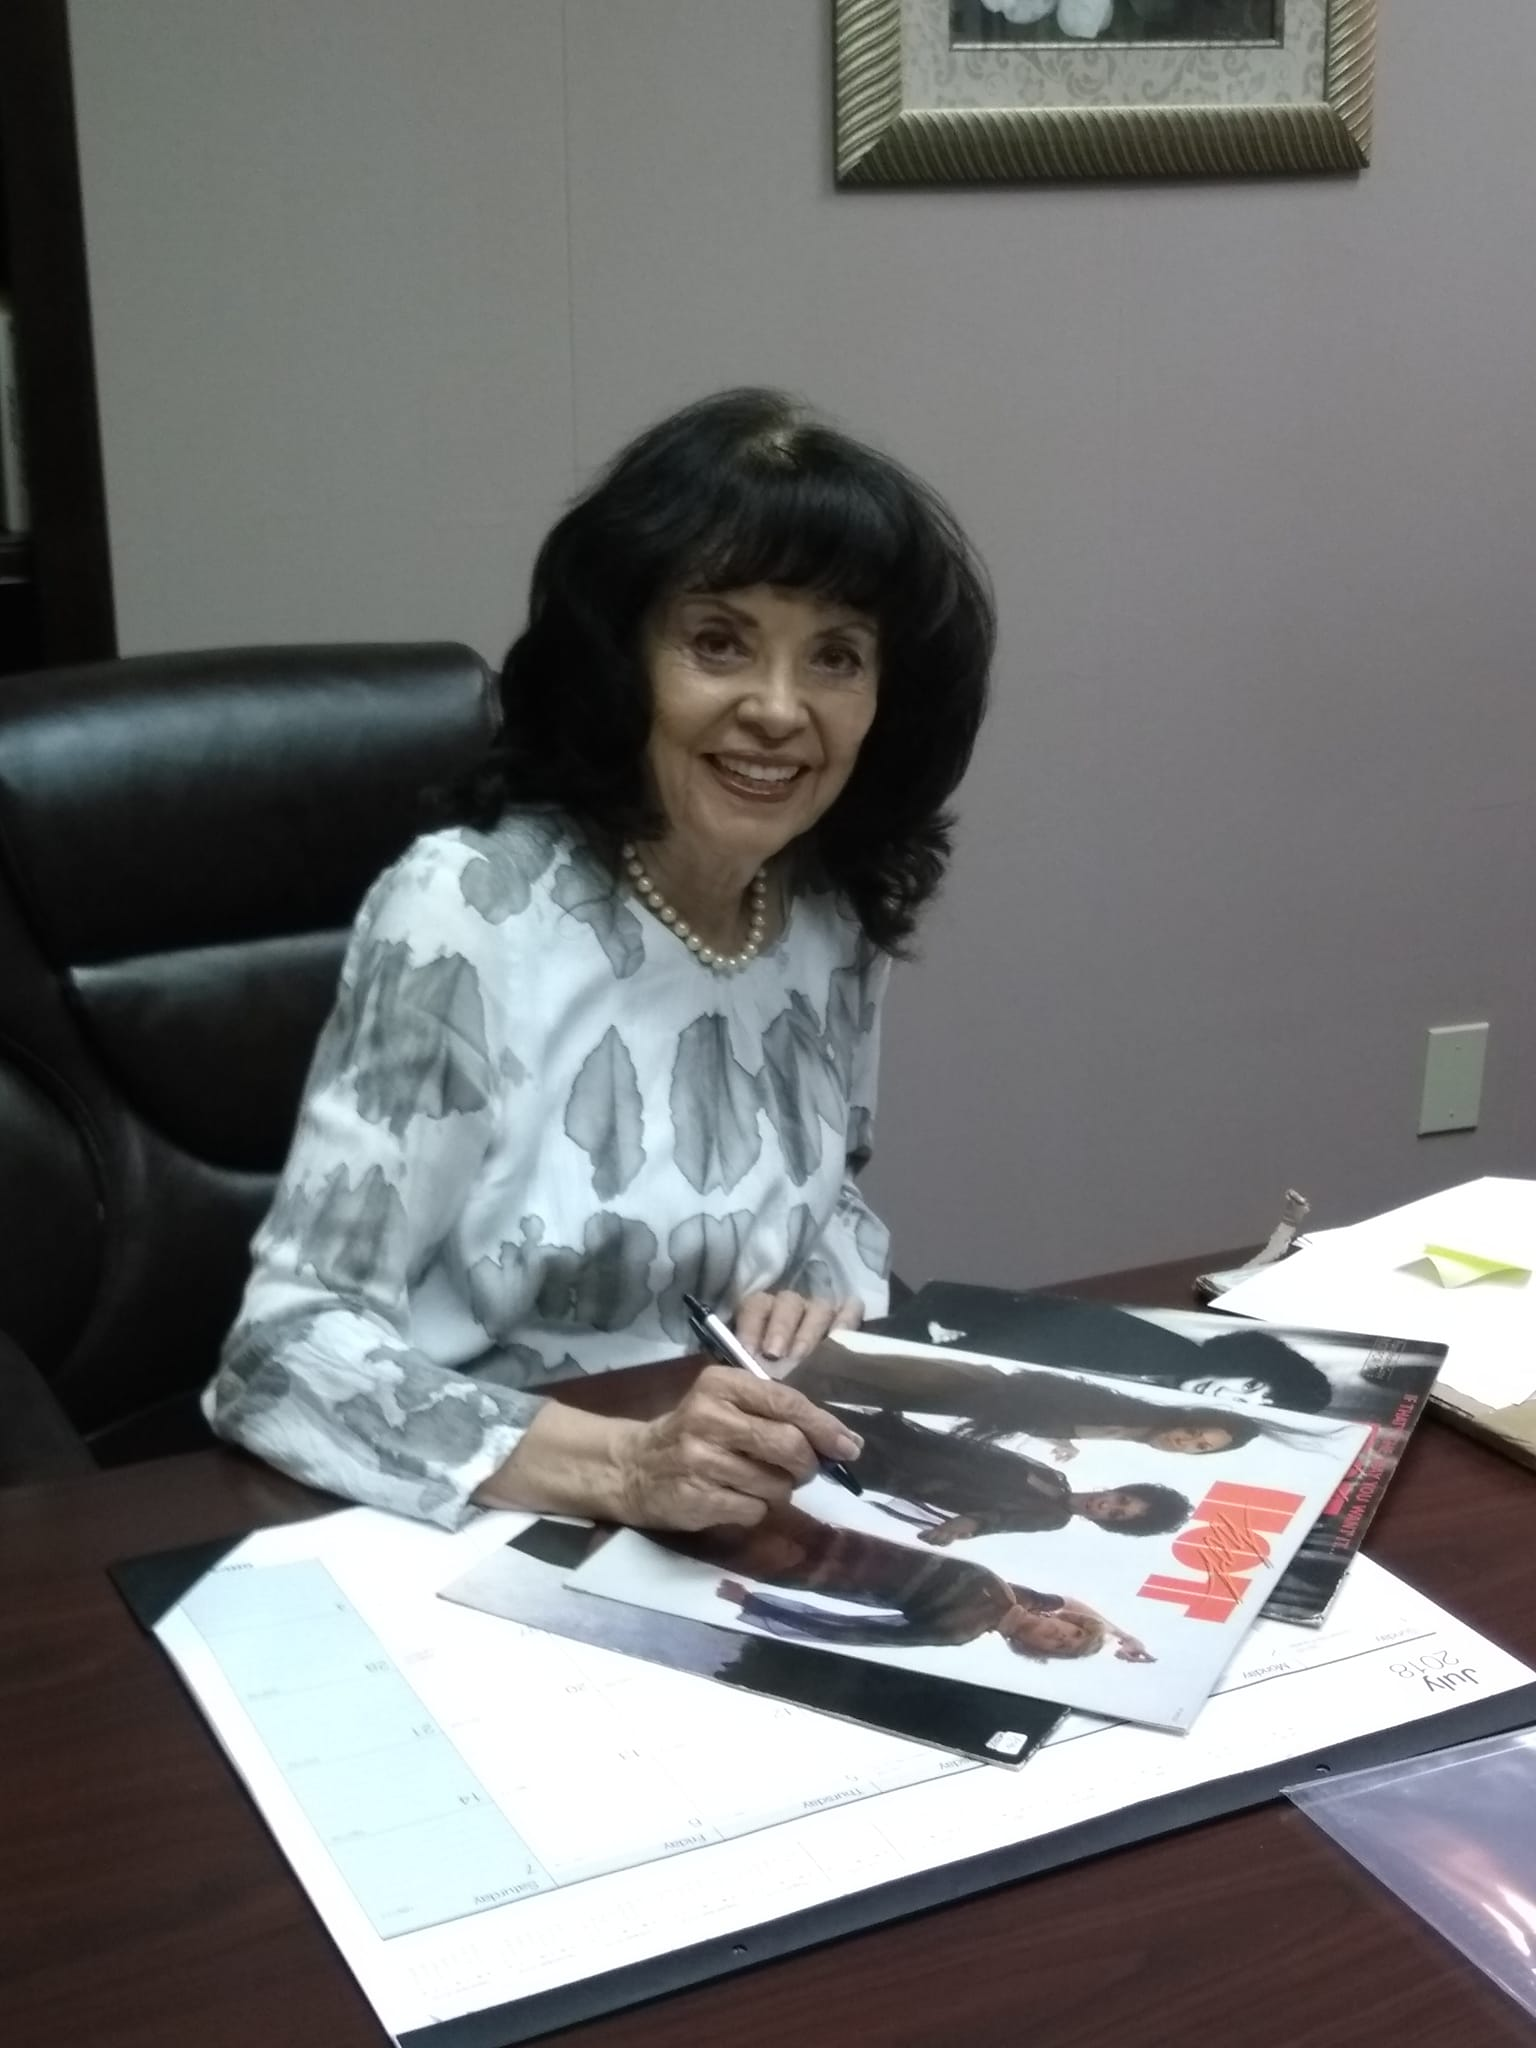 Juanita signing Fan requests 2018